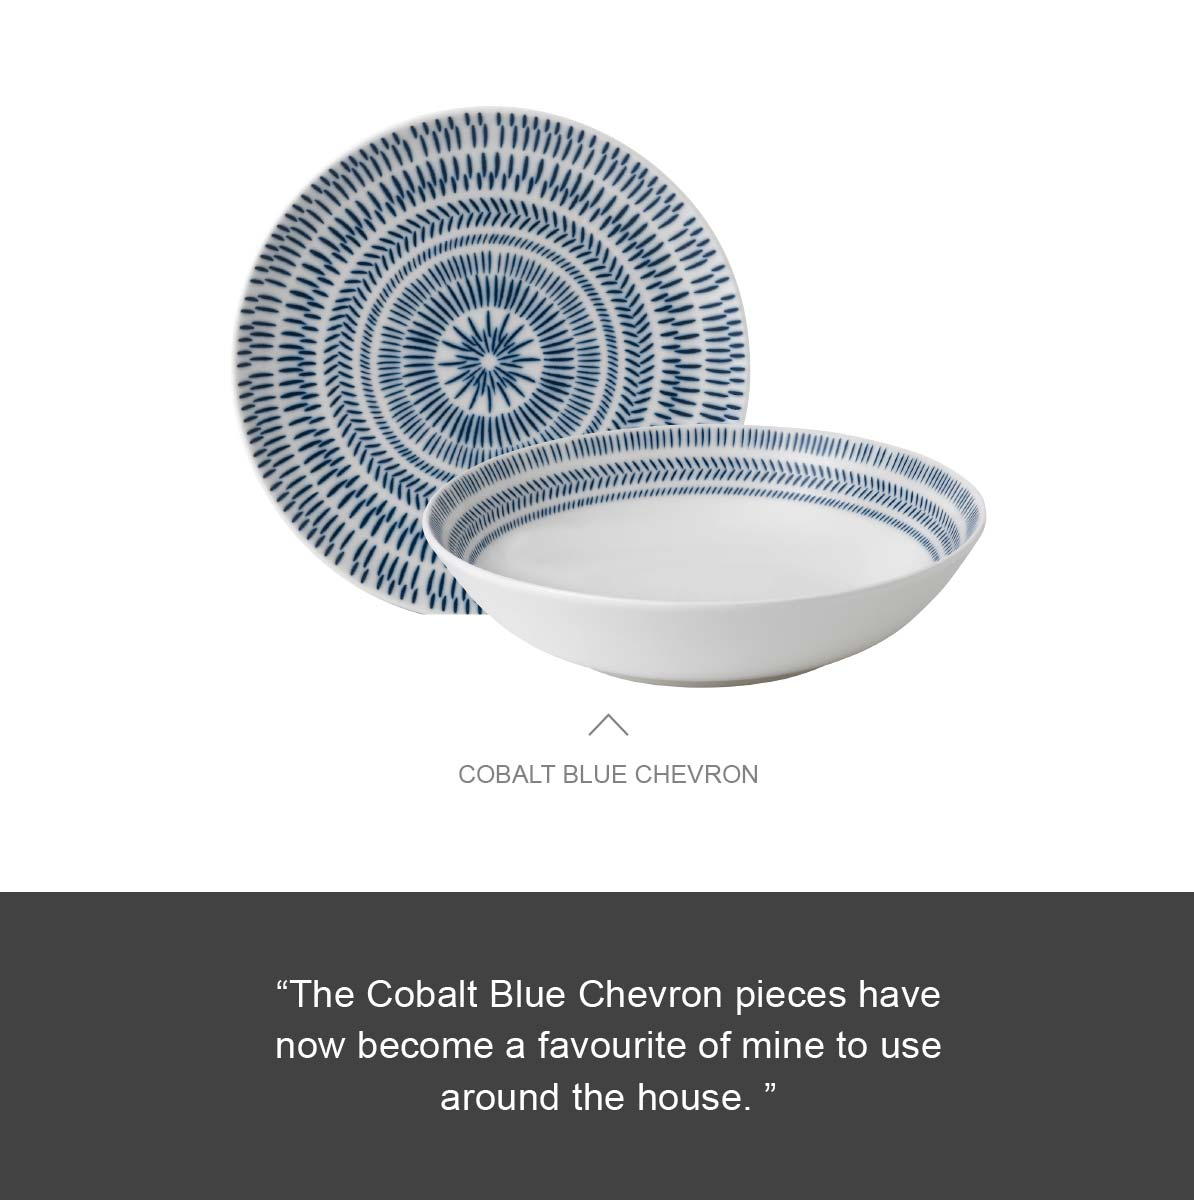 Cobalt Blue Chevron -- 'The Cobalt Blue Chevron pieces have now become a favourite of mine to use around the house.'